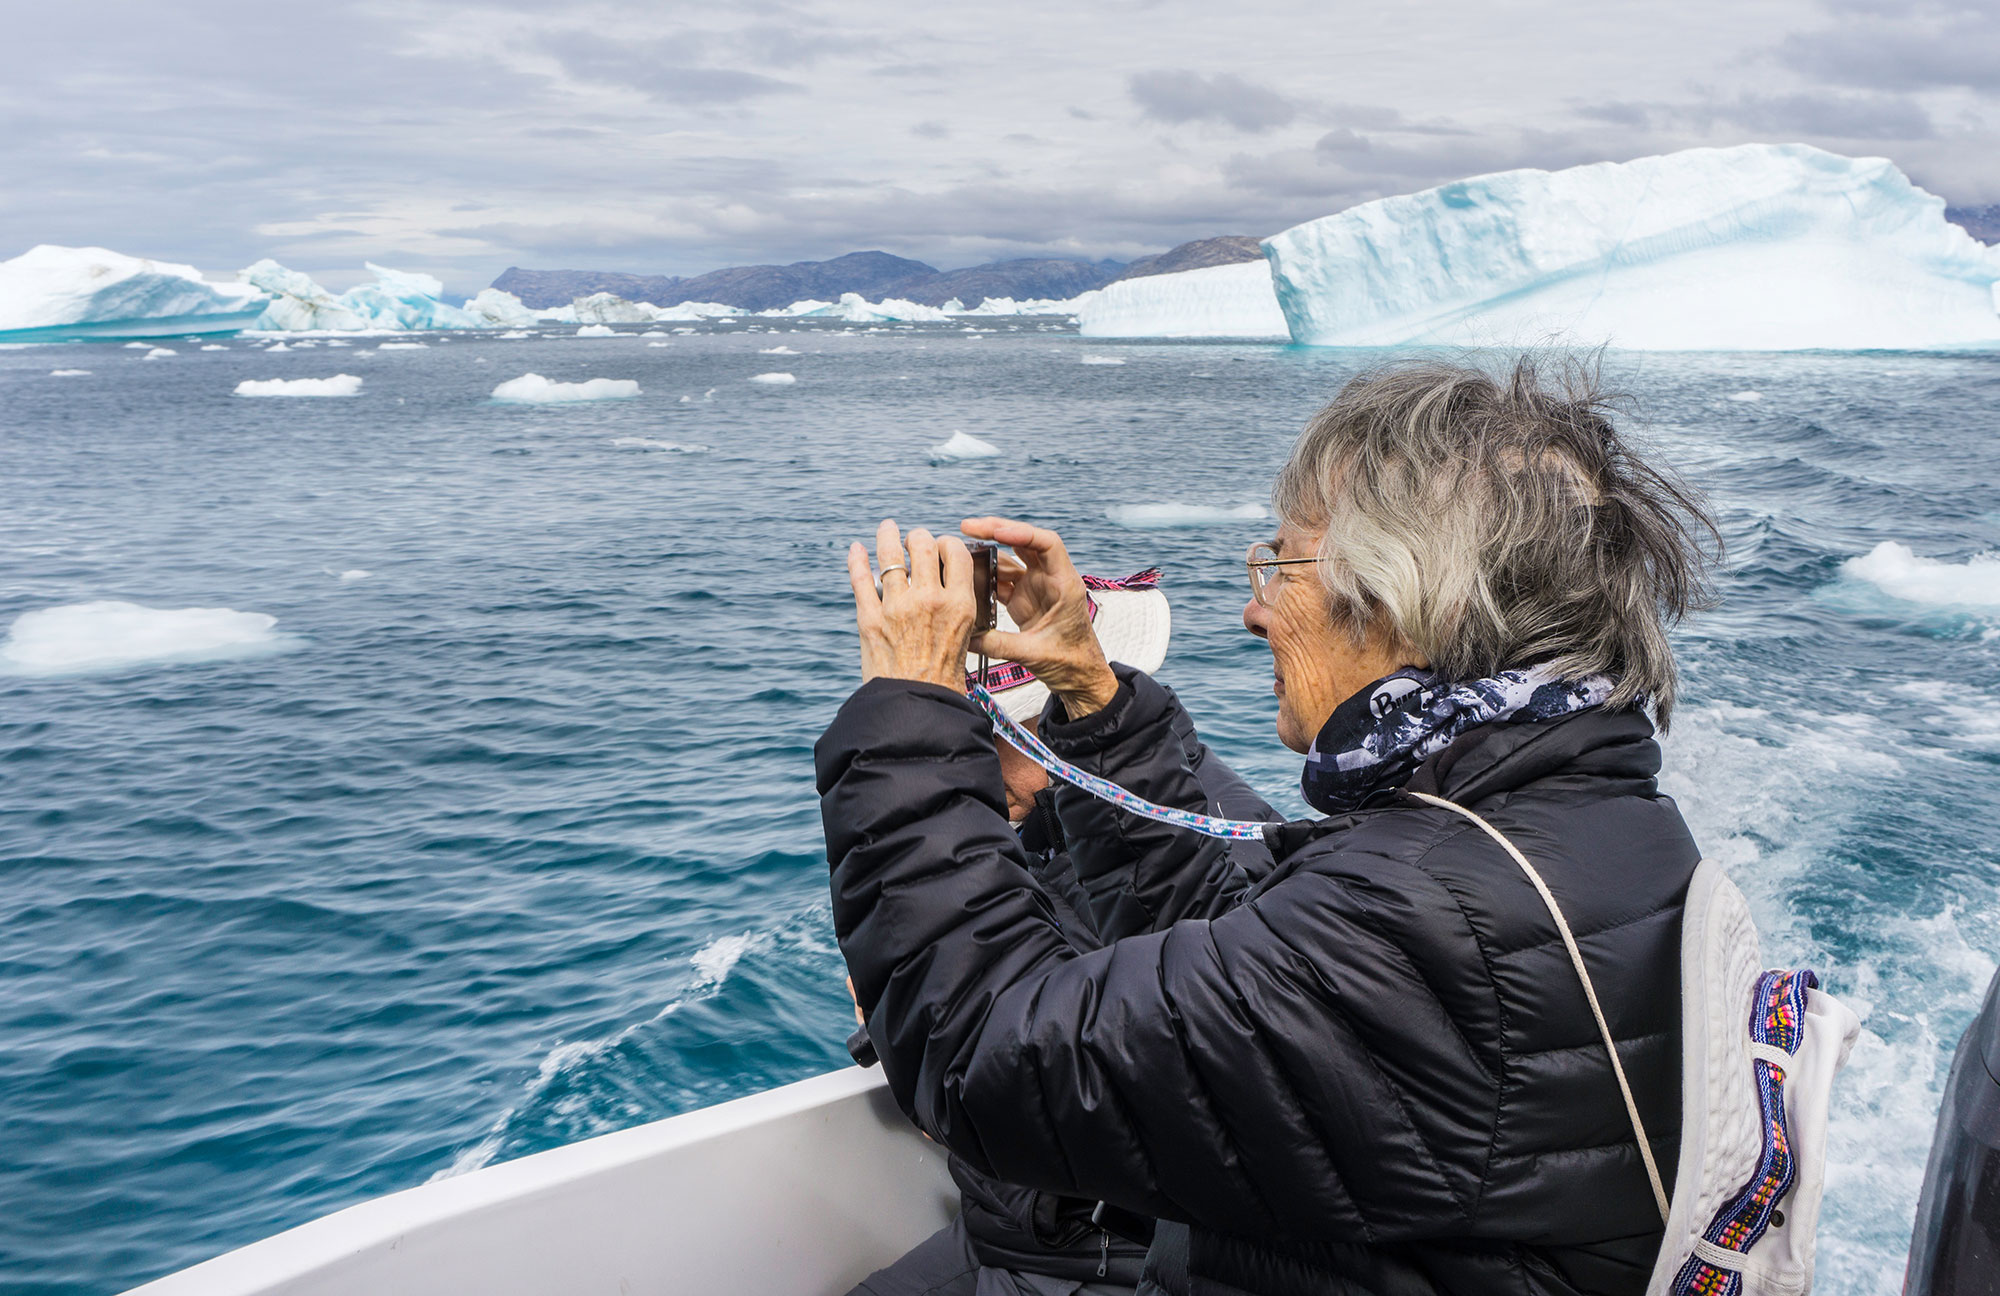 Photographing the Iceberg Spectacle